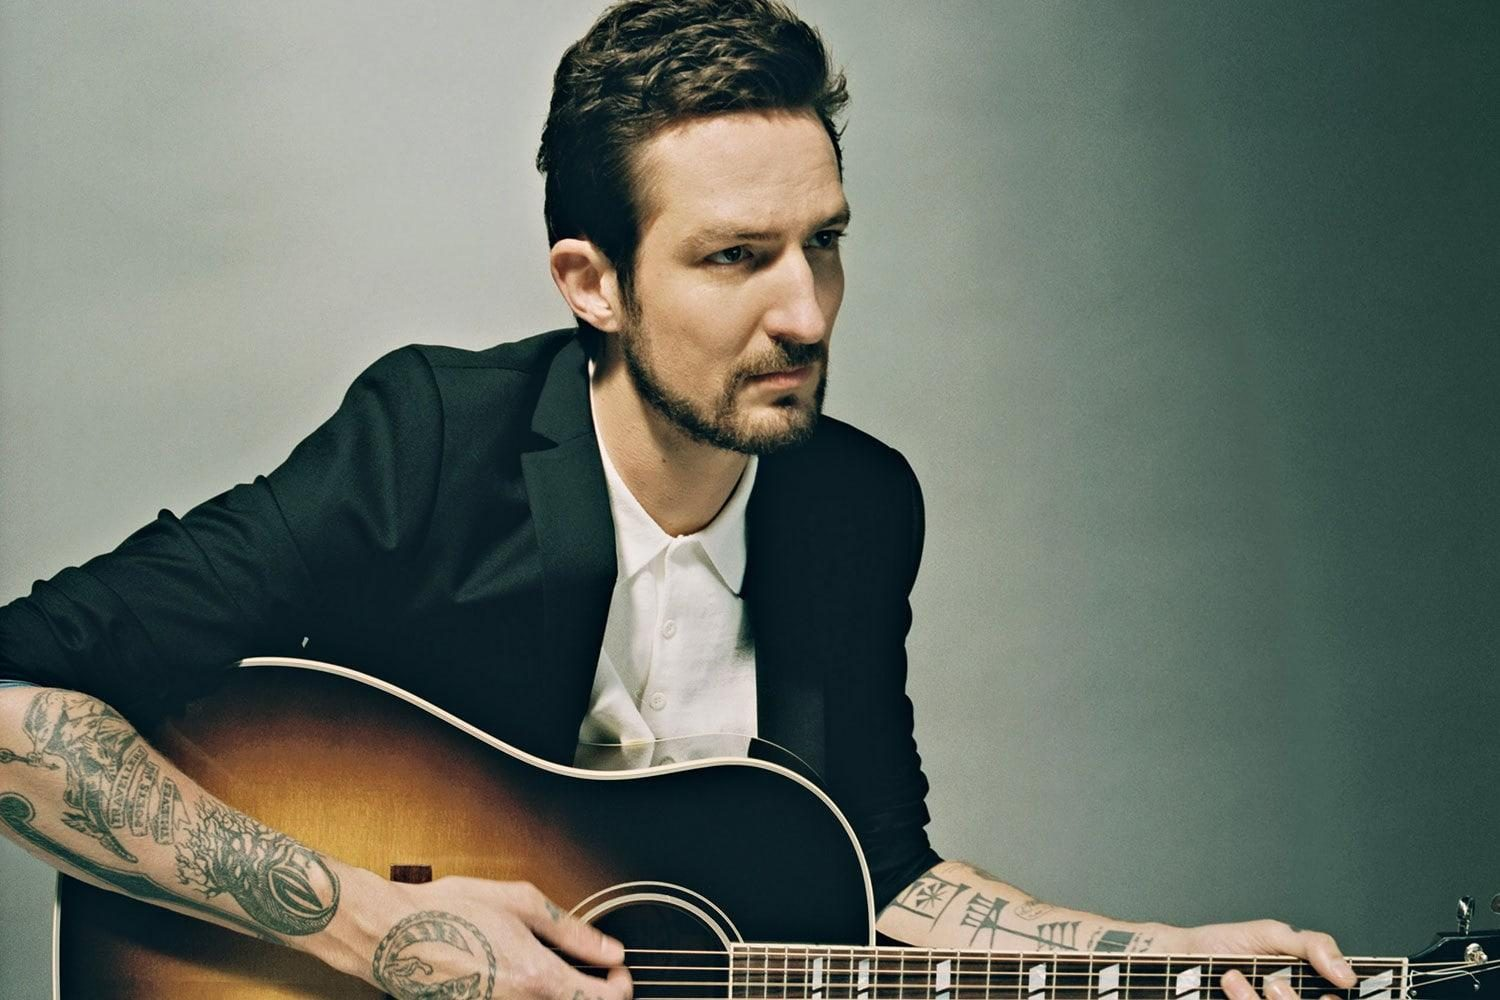 Frank Turner makes some 'Little Changes' on his new song